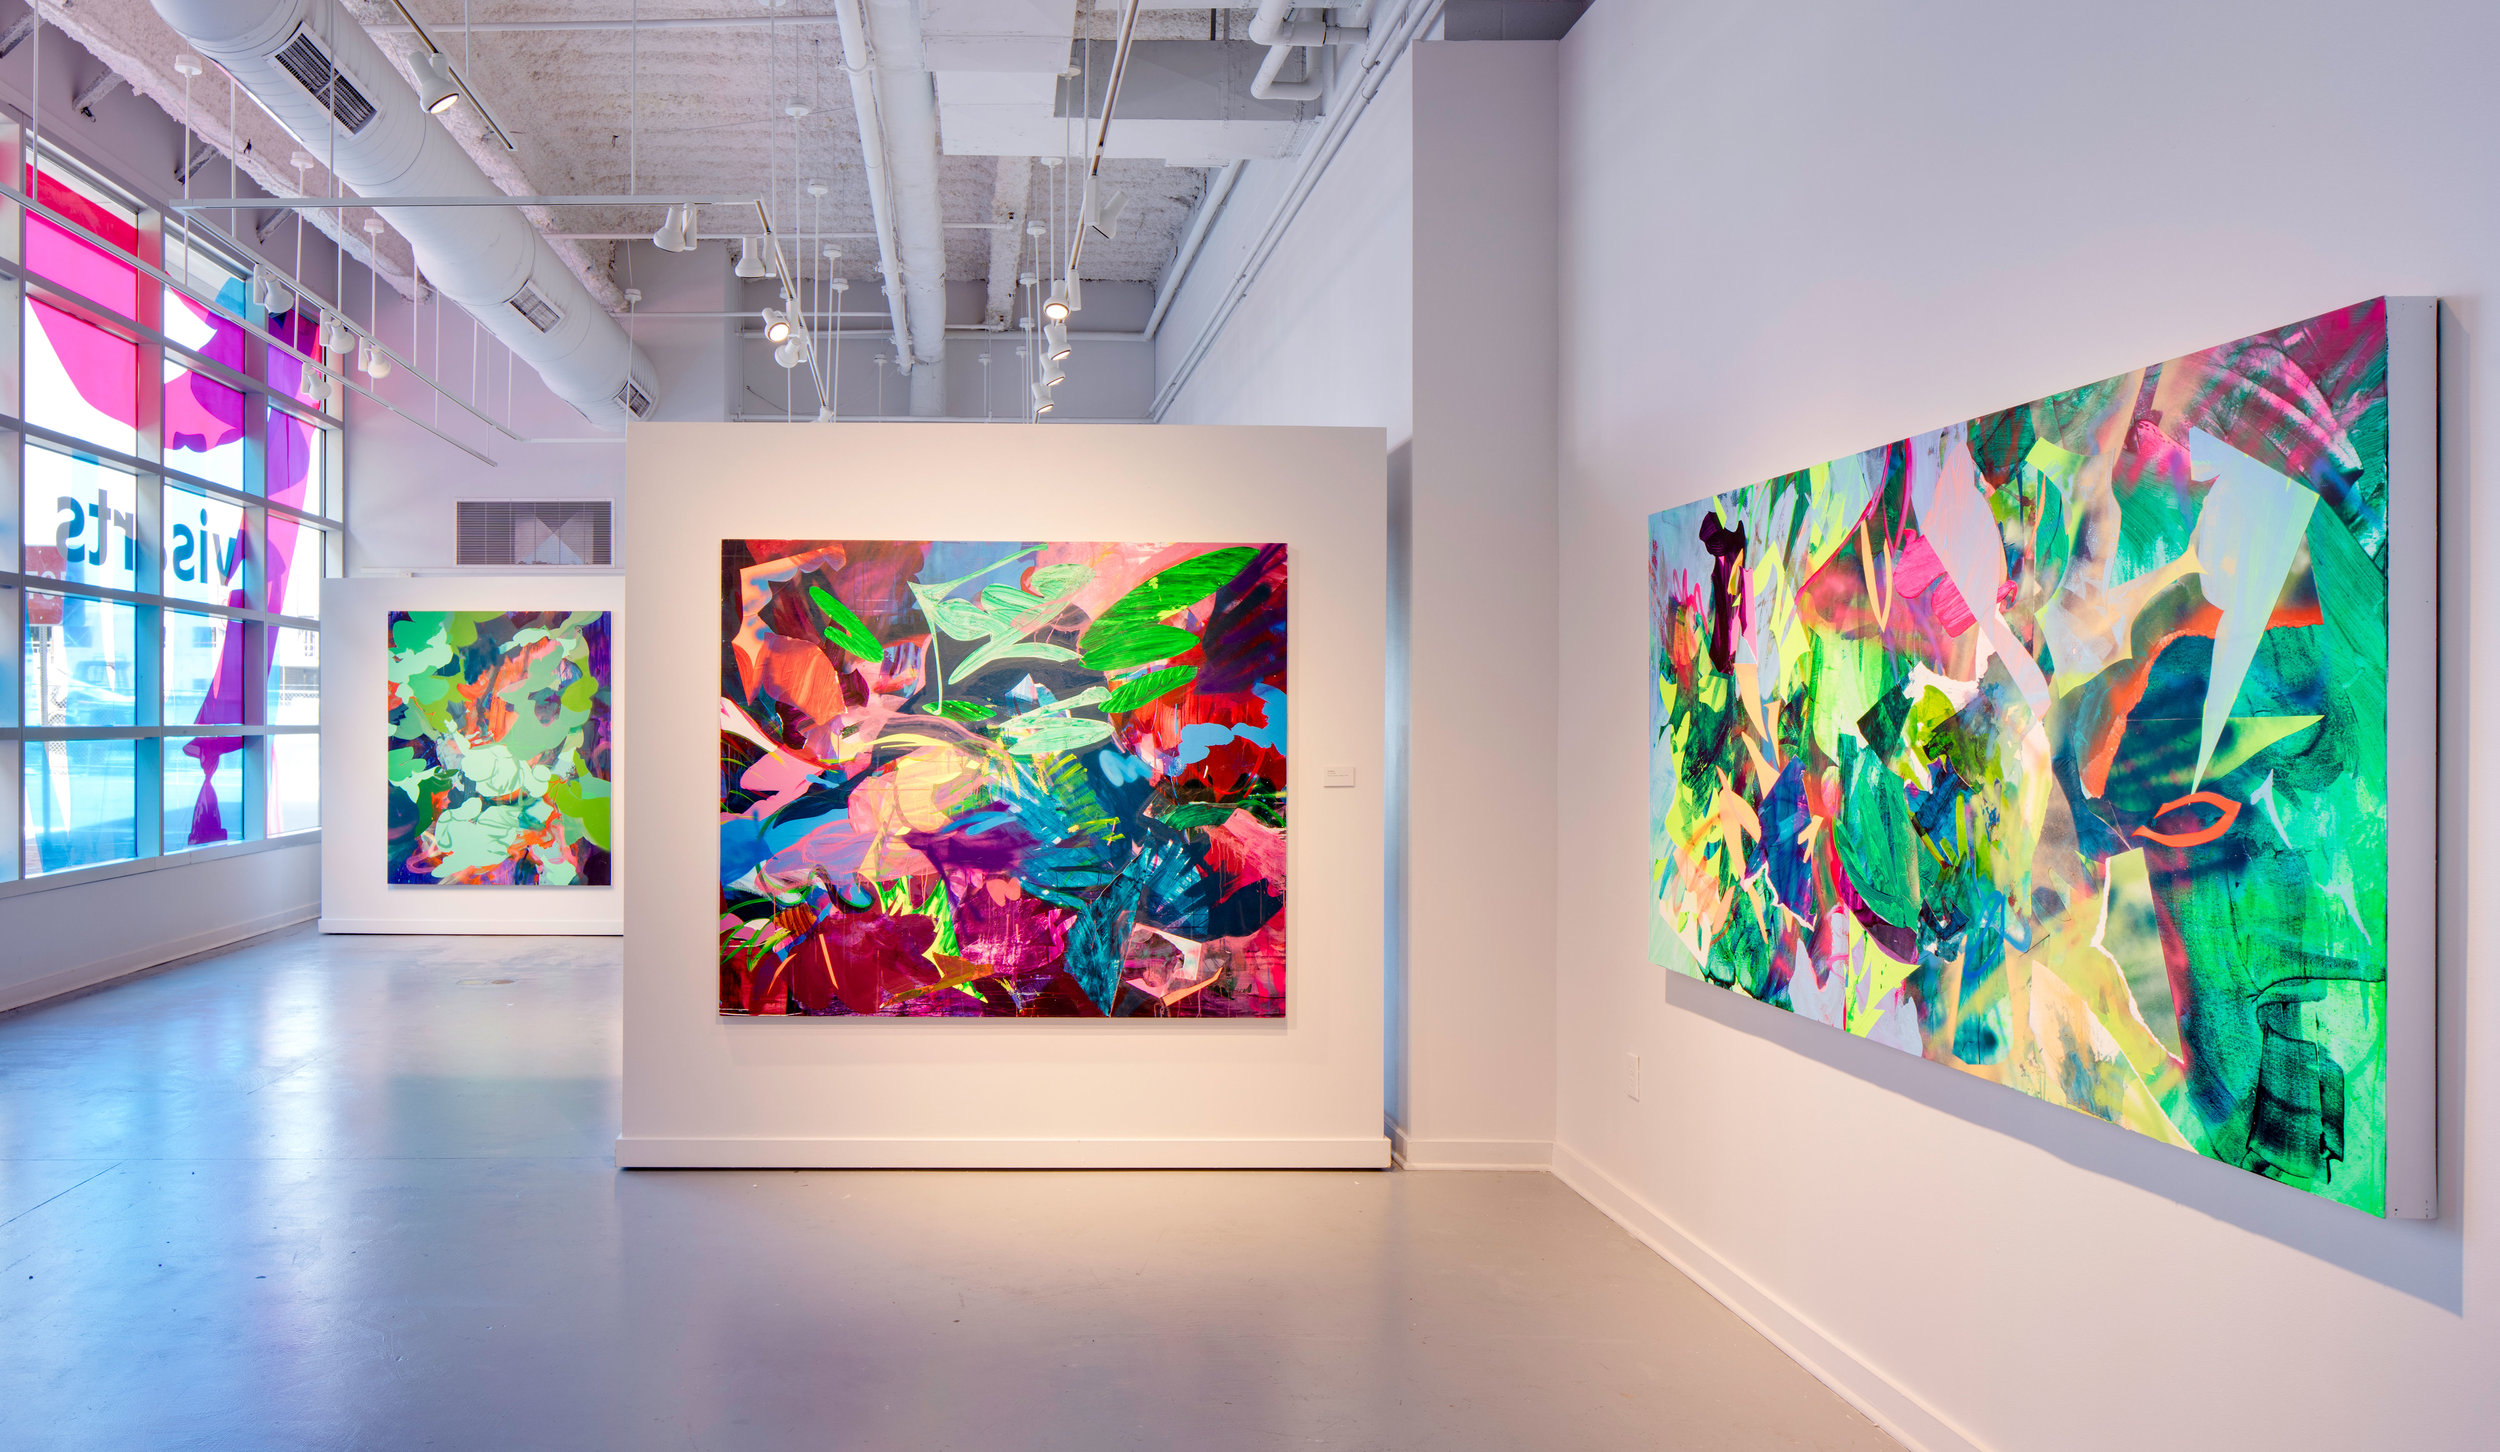 First Cut  installation view, 2016, Gibbs Street Gallery, VisArts, Rockville, Maryland